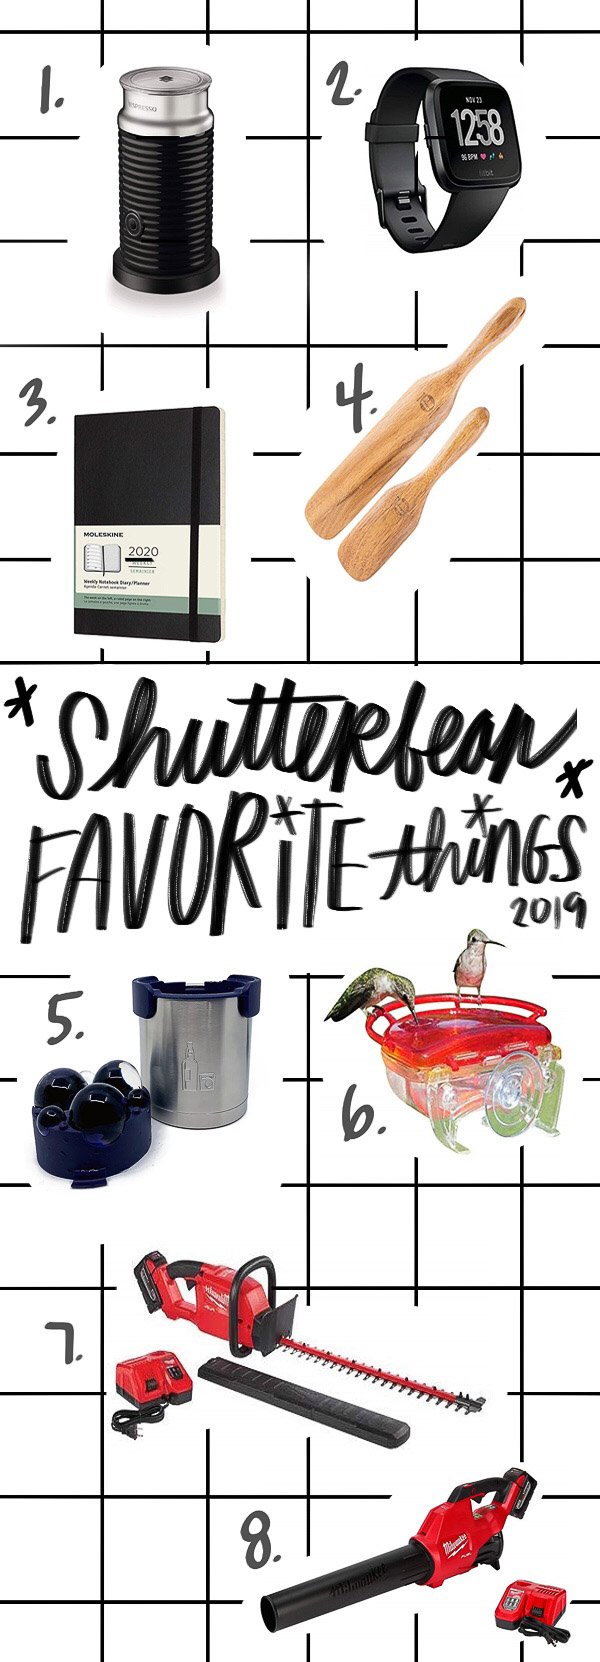 Favorite Things Holiday Gift Guide 2019